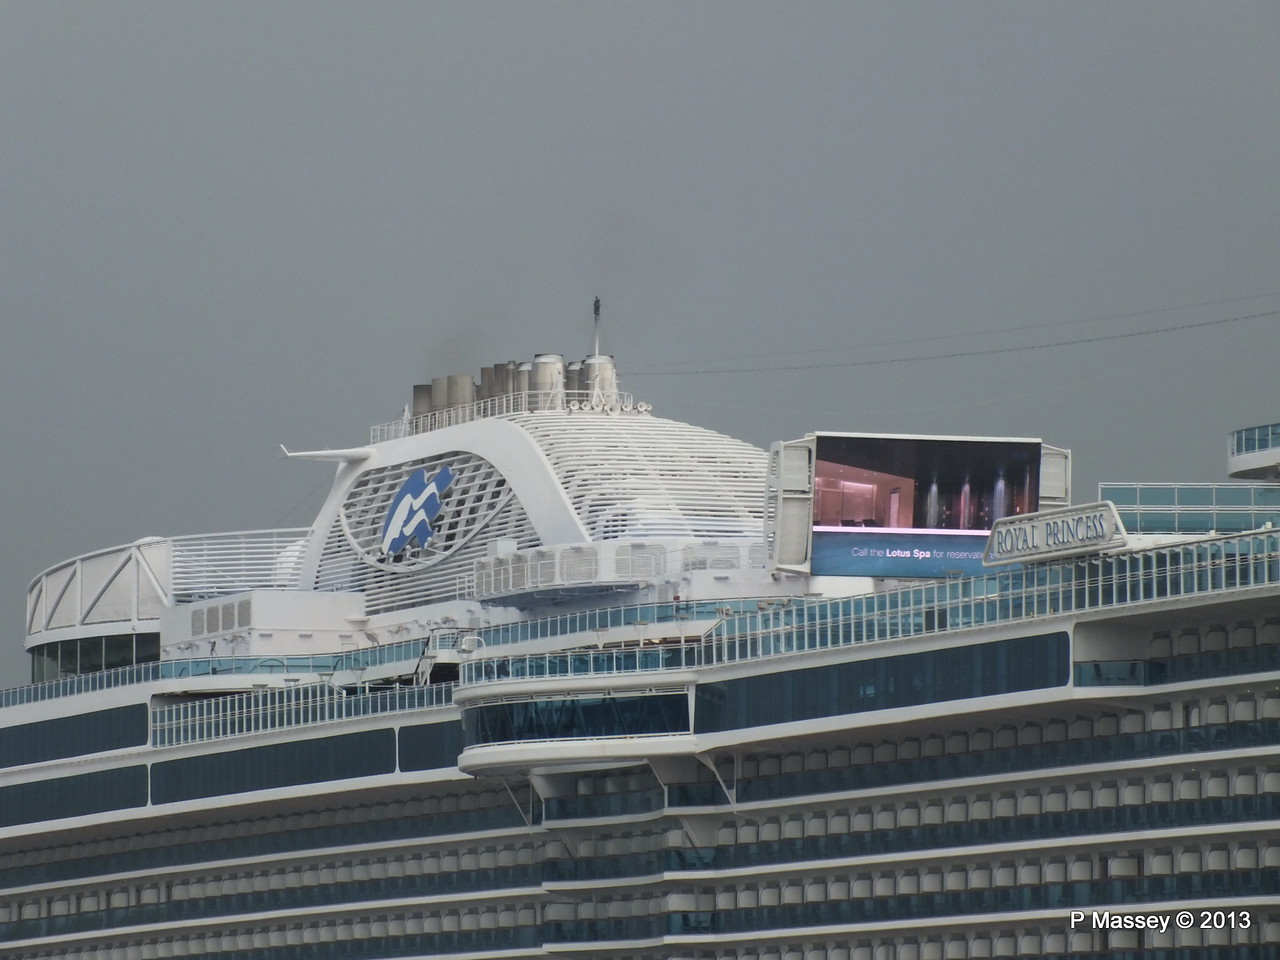 ROYAL PRINCESS Southampton PDM 07-06-2013 11-37-33